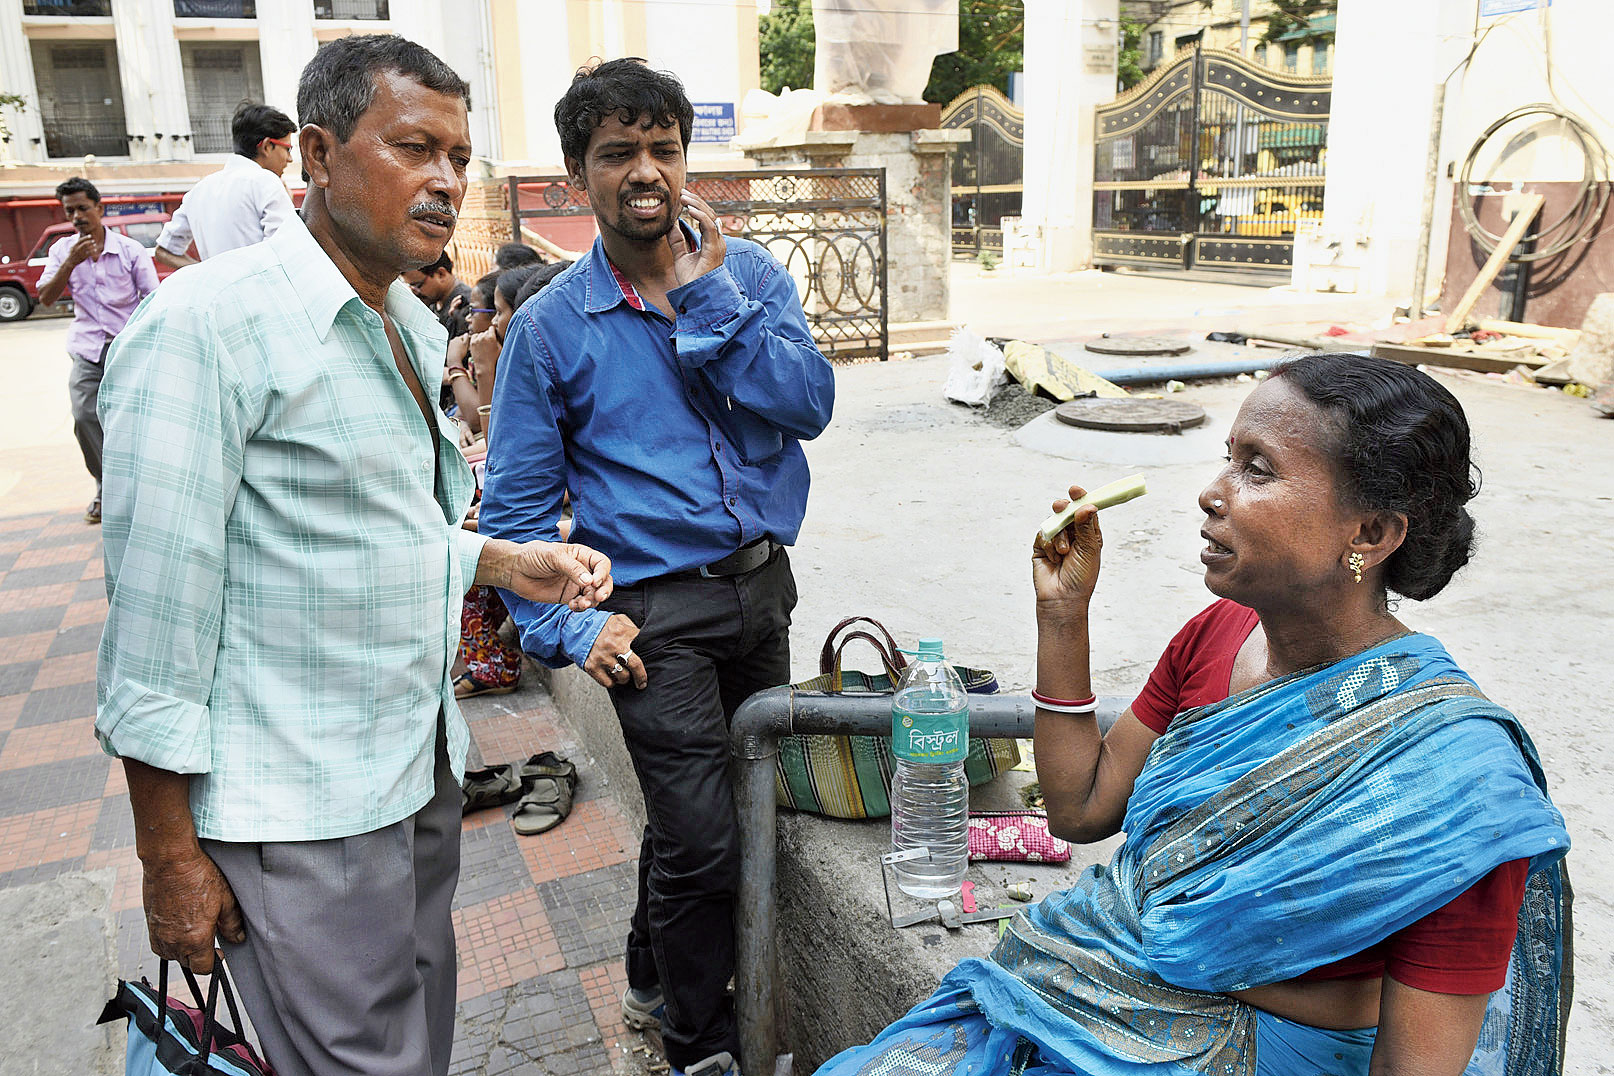 Nirmal Das's family from Magra in Hooghly has been wondering if he should be taken to a private hospital in Bangalore. Das, who has been diagnosed with liver cancer, was admitted to the Calcutta Medical College and Hospital a fortnight ago.